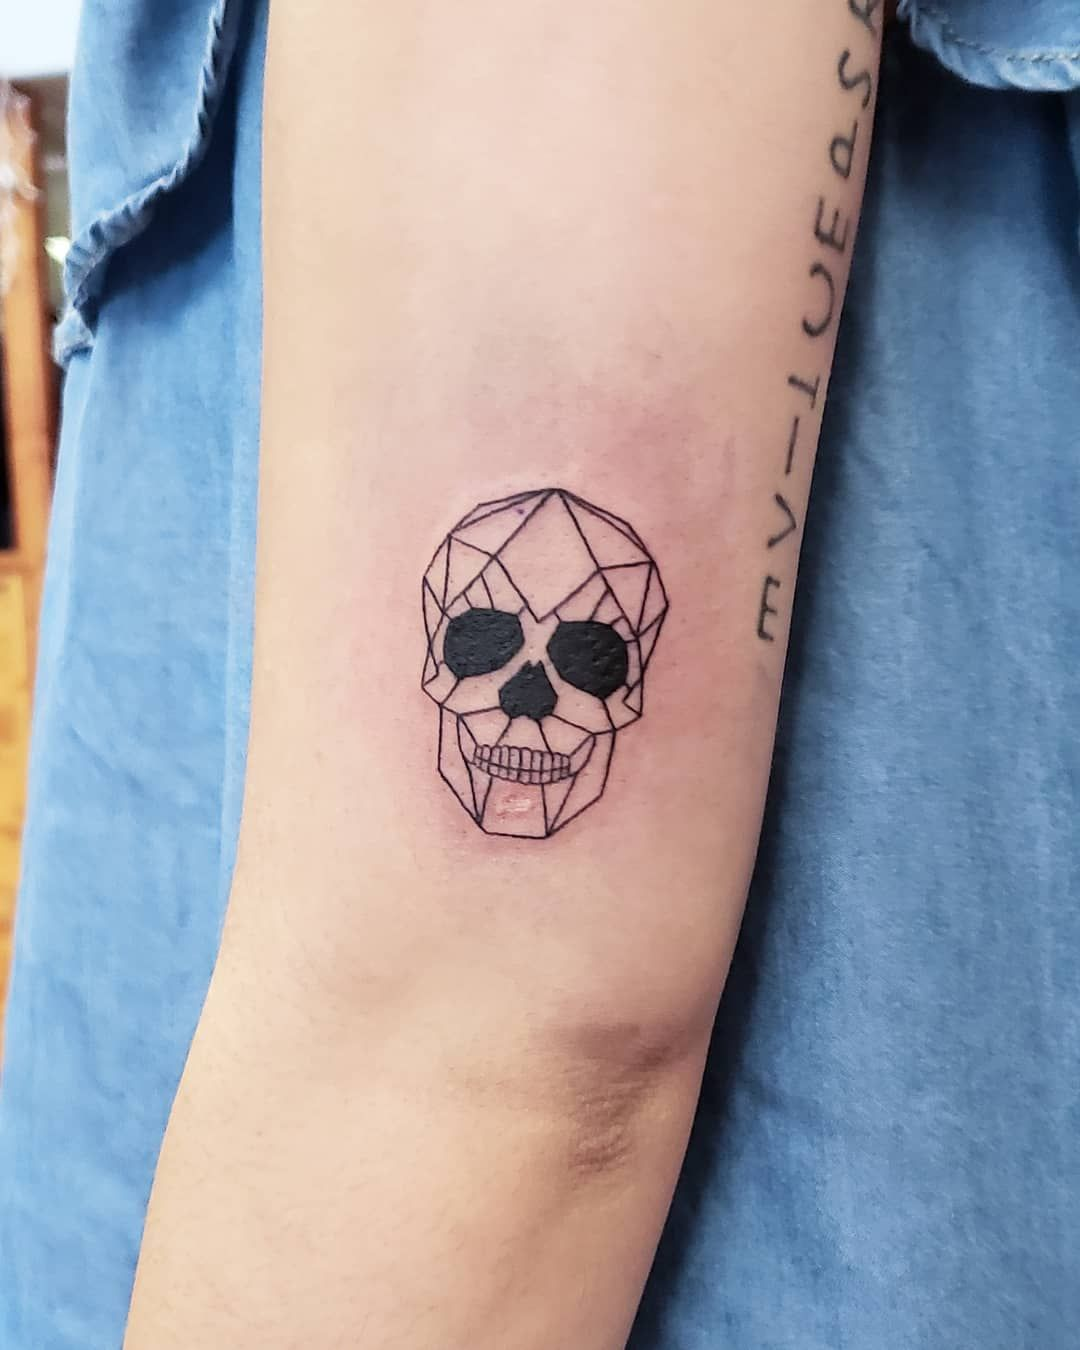 Designs Meanings 2019: 29+ Significant Armband Tattoos